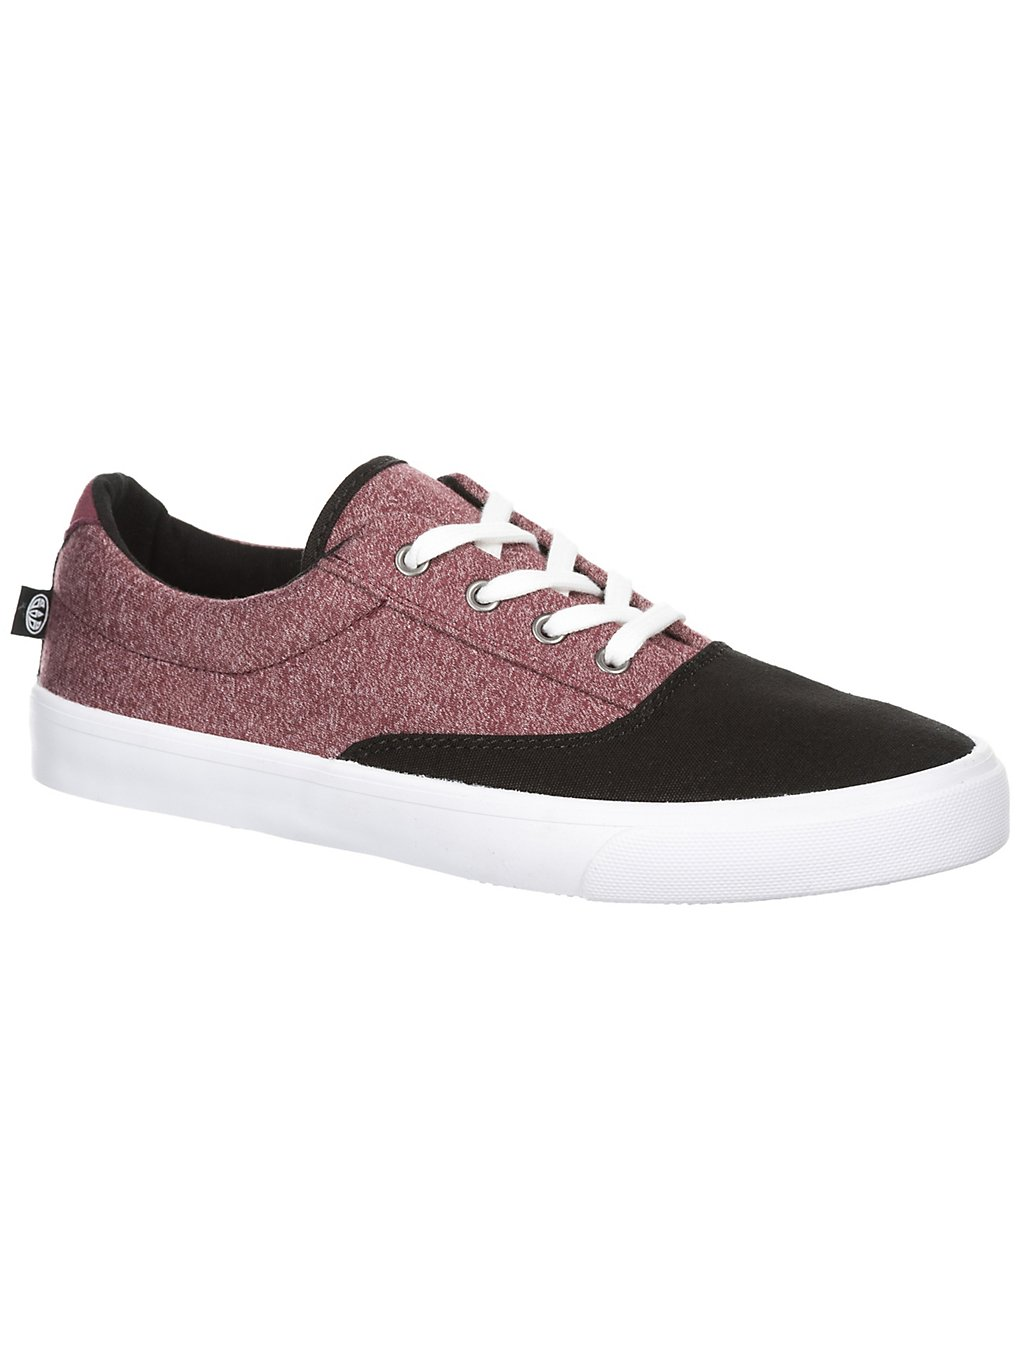 Image of Animal Malia Sneakers Women